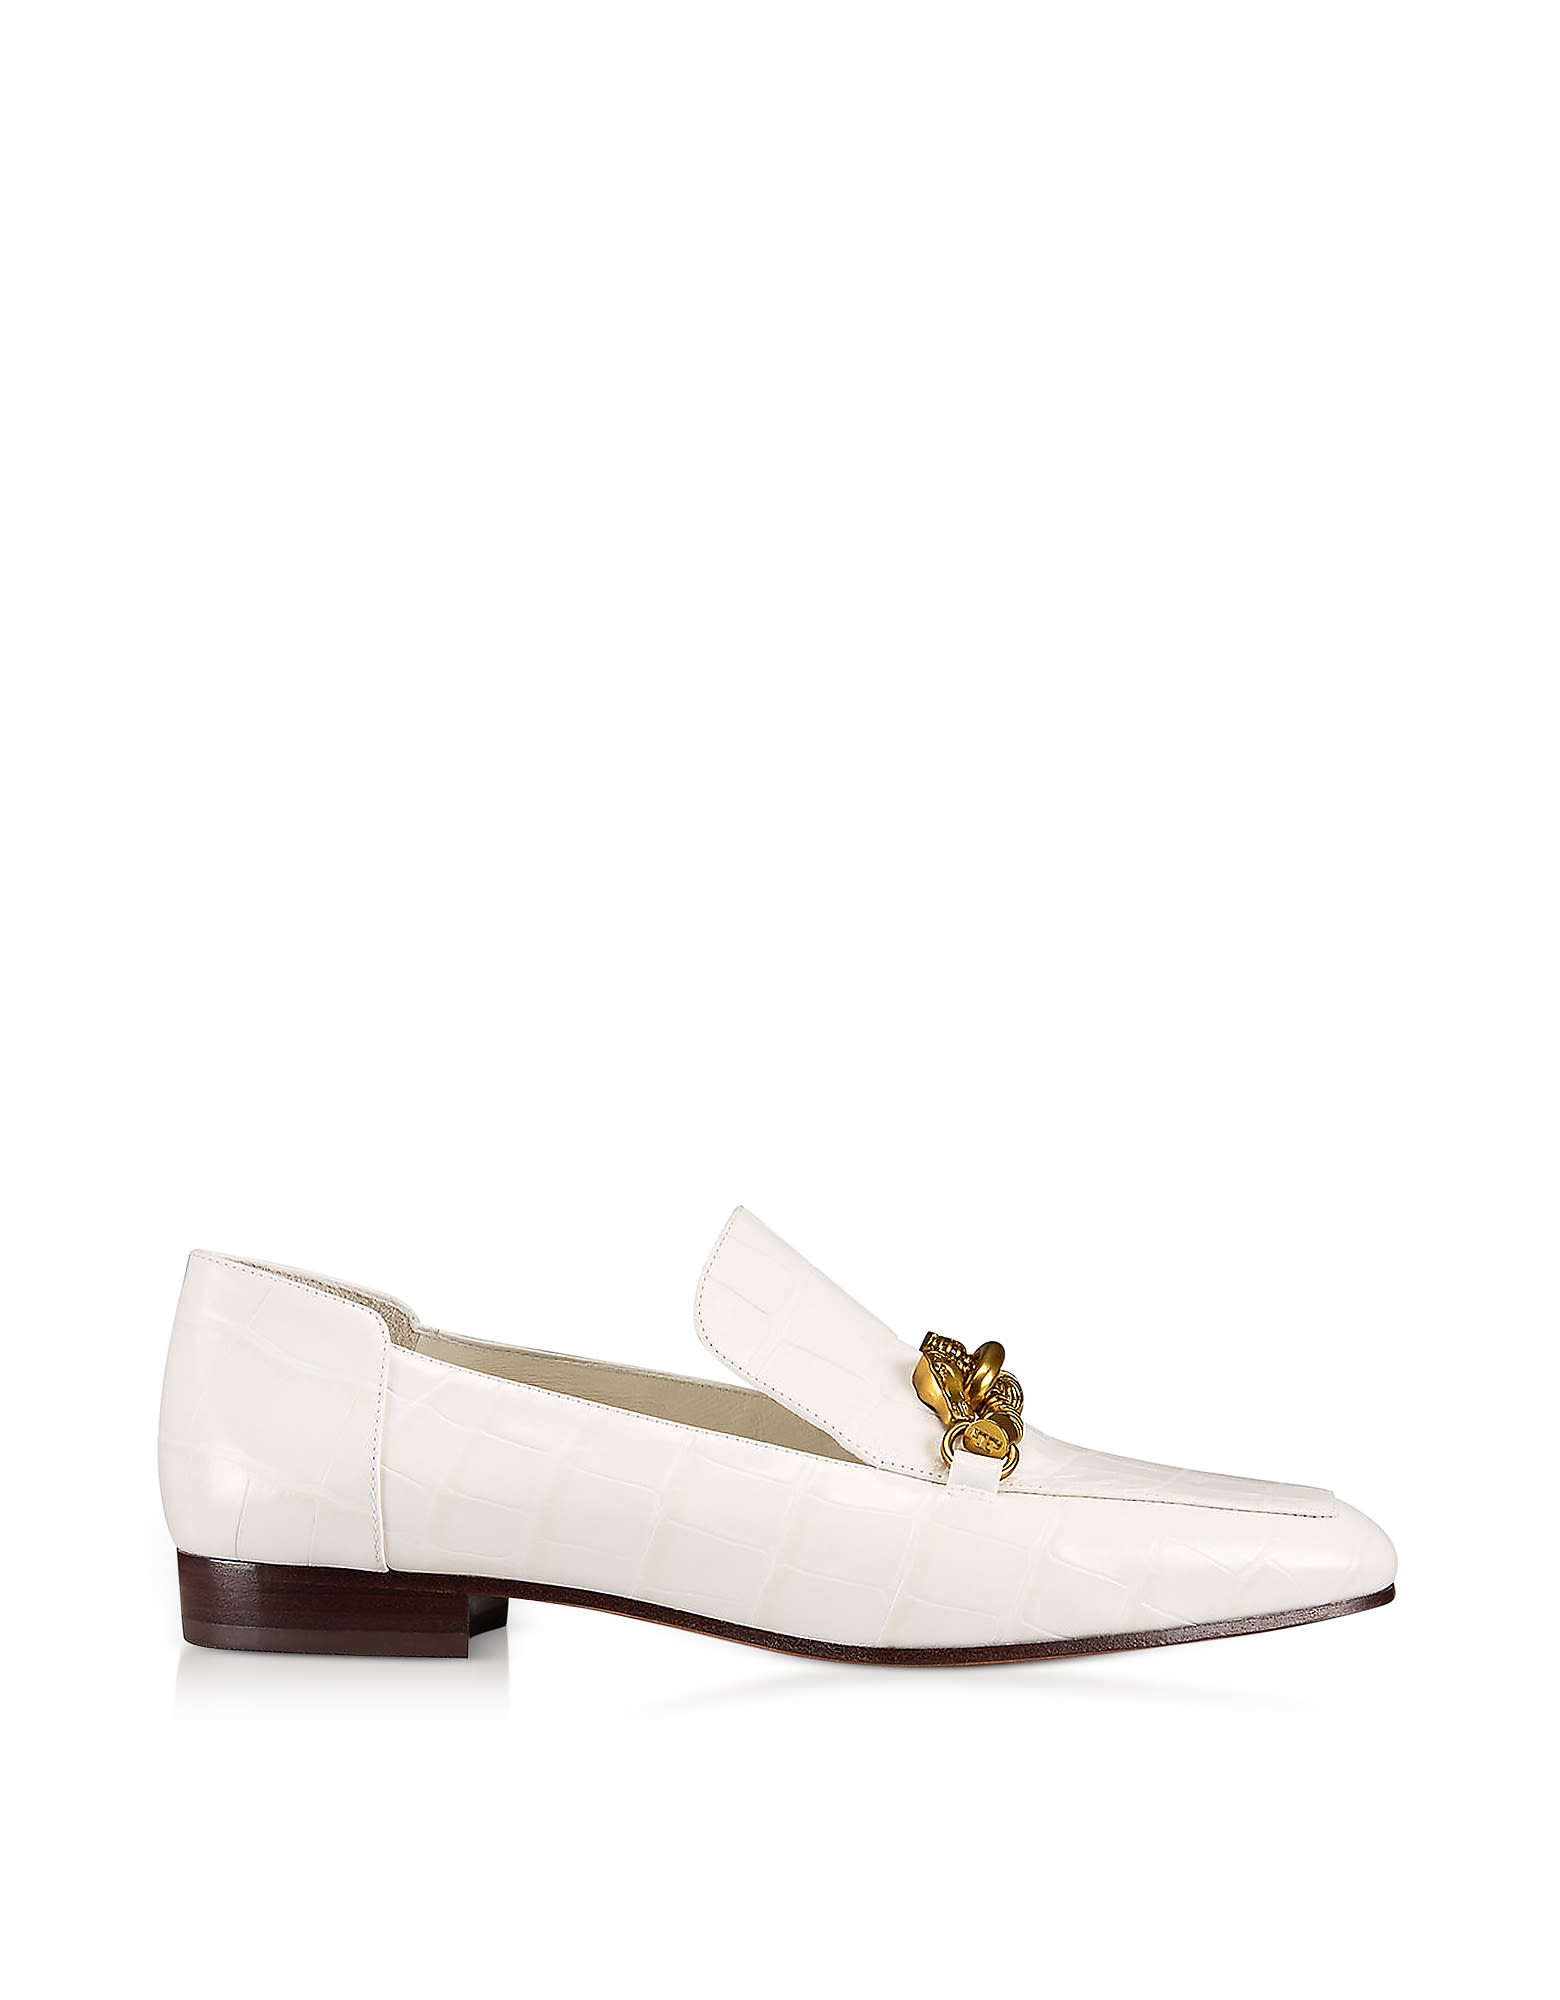 db5a5e965a7 TORY BURCH JESSA WHITE CROCO EMBOSSED LEATHER LOAFERS W-GOLDTONE HORSE  HARDWARE